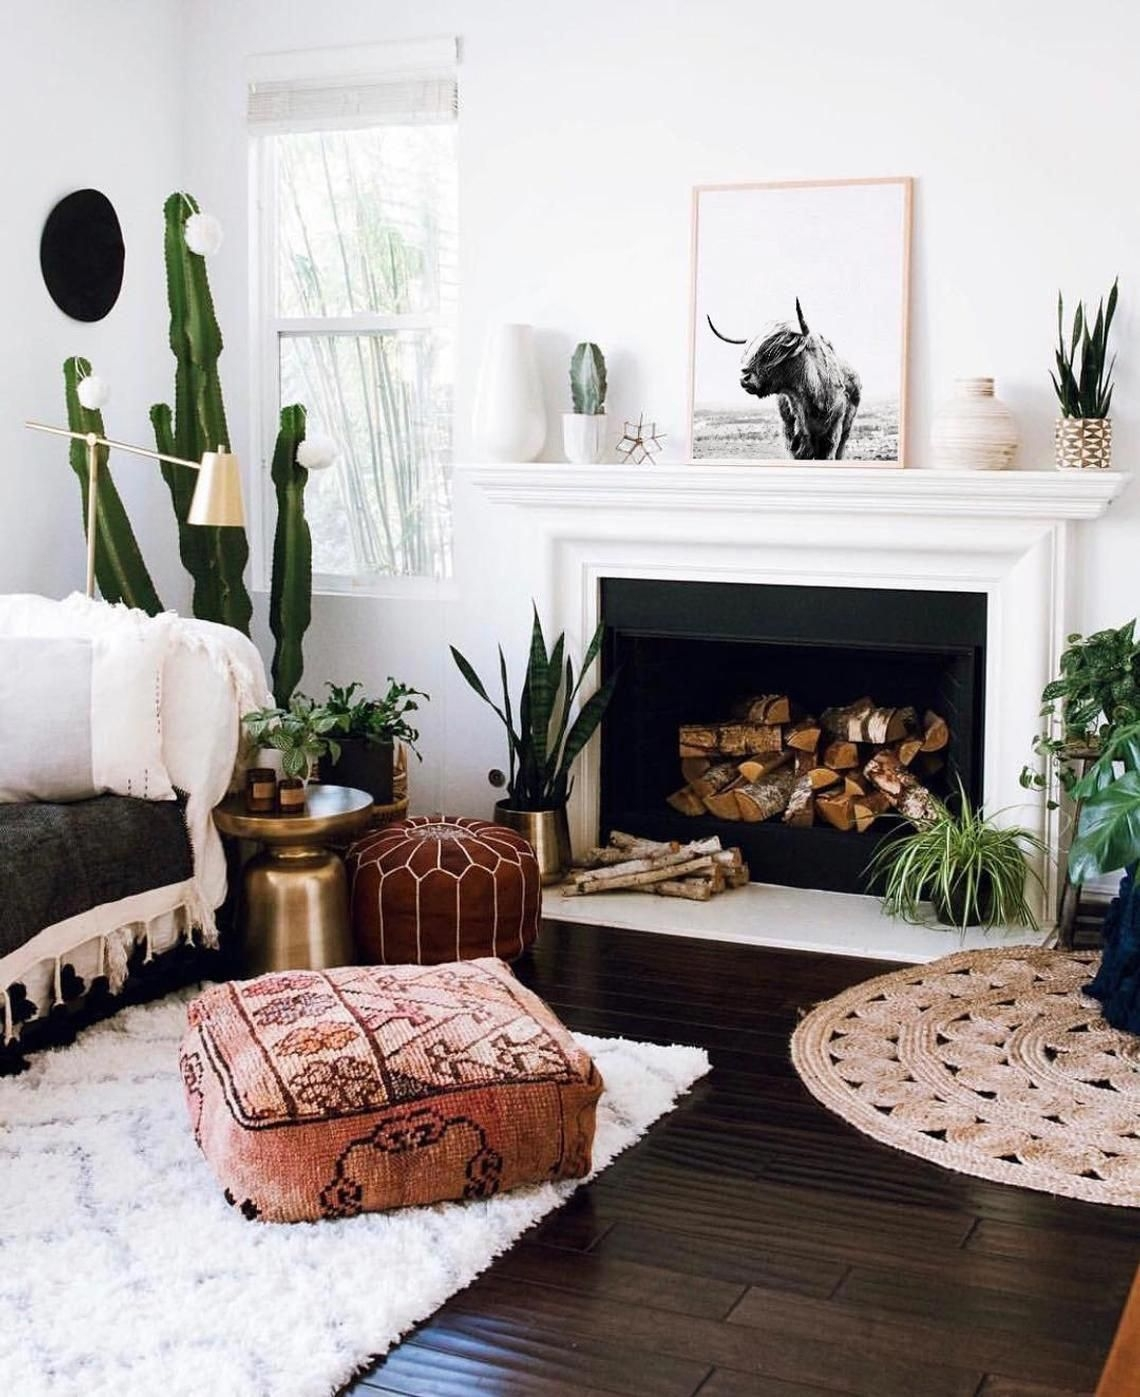 Fanciable Boho Decor Ideas for Living Room with Fireplace and Tv On Decorative Highland Cow Poster Minimalist Scandinavian northern Cattle On Boho Decor Ideas for Living Room with Fireplace and Tv